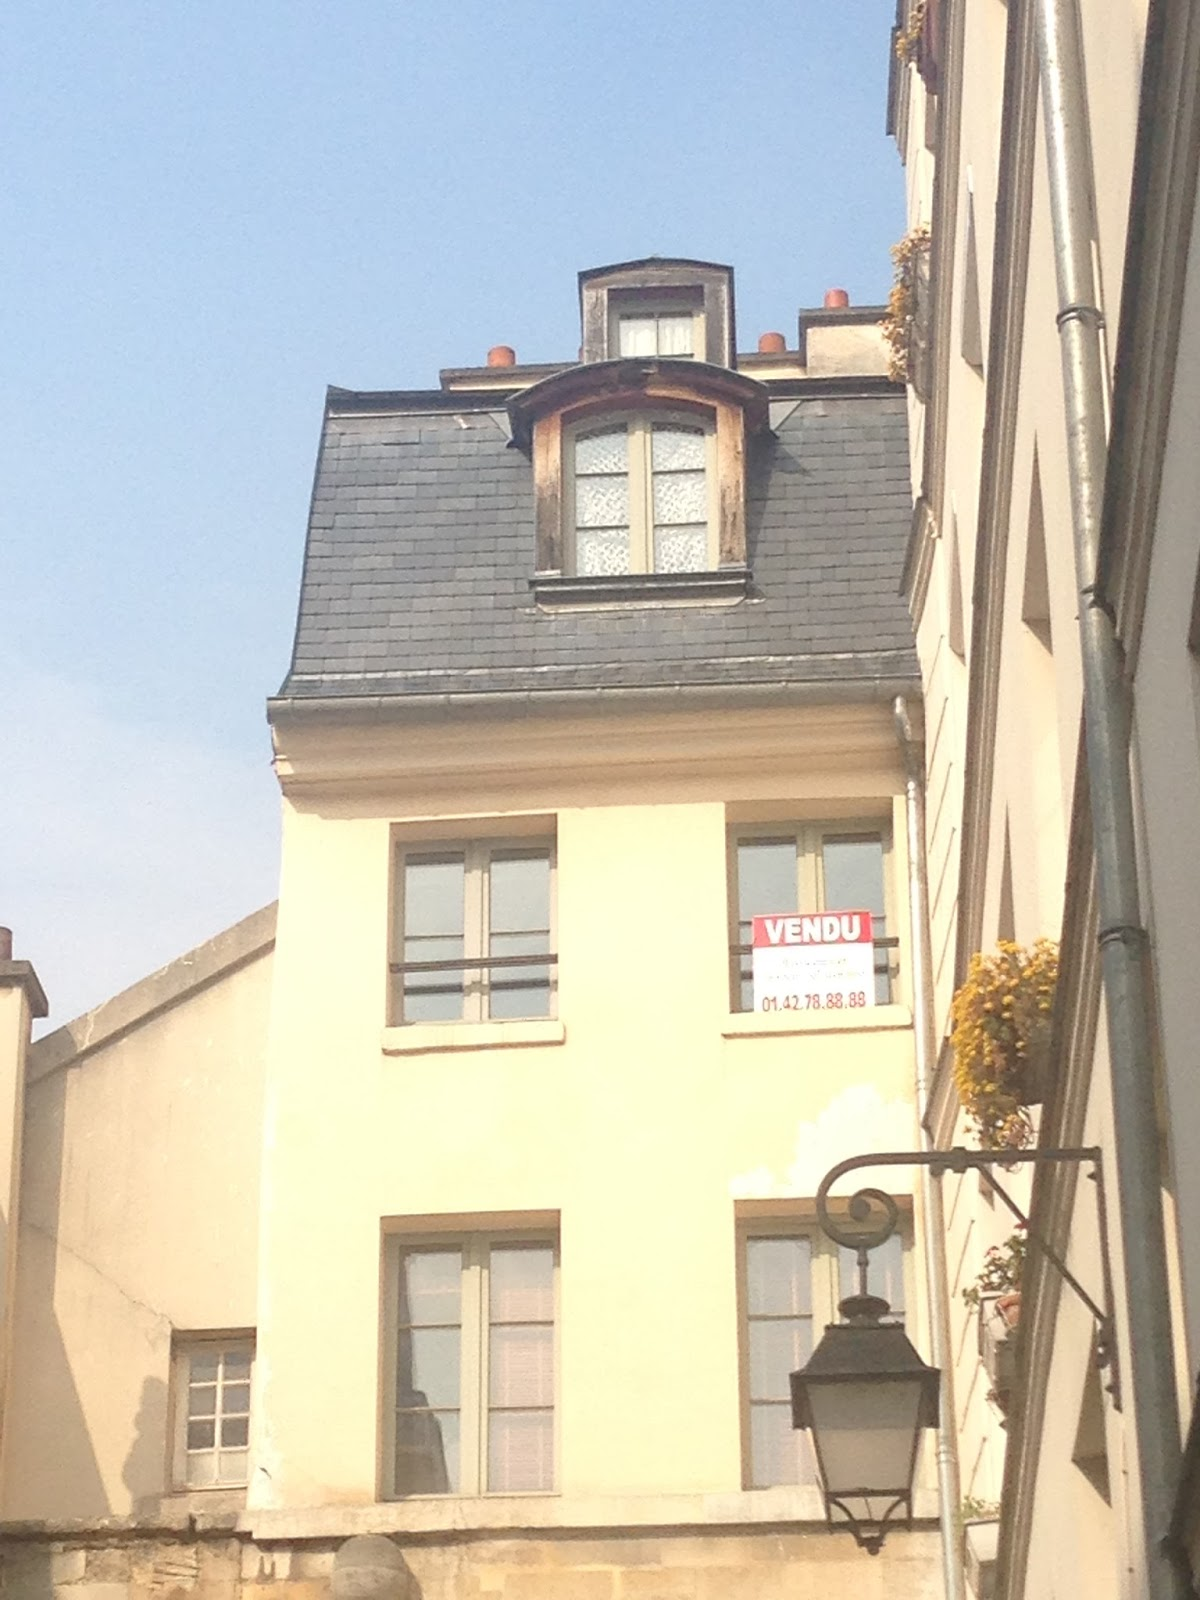 search my home in paris: sell or buy an apartment